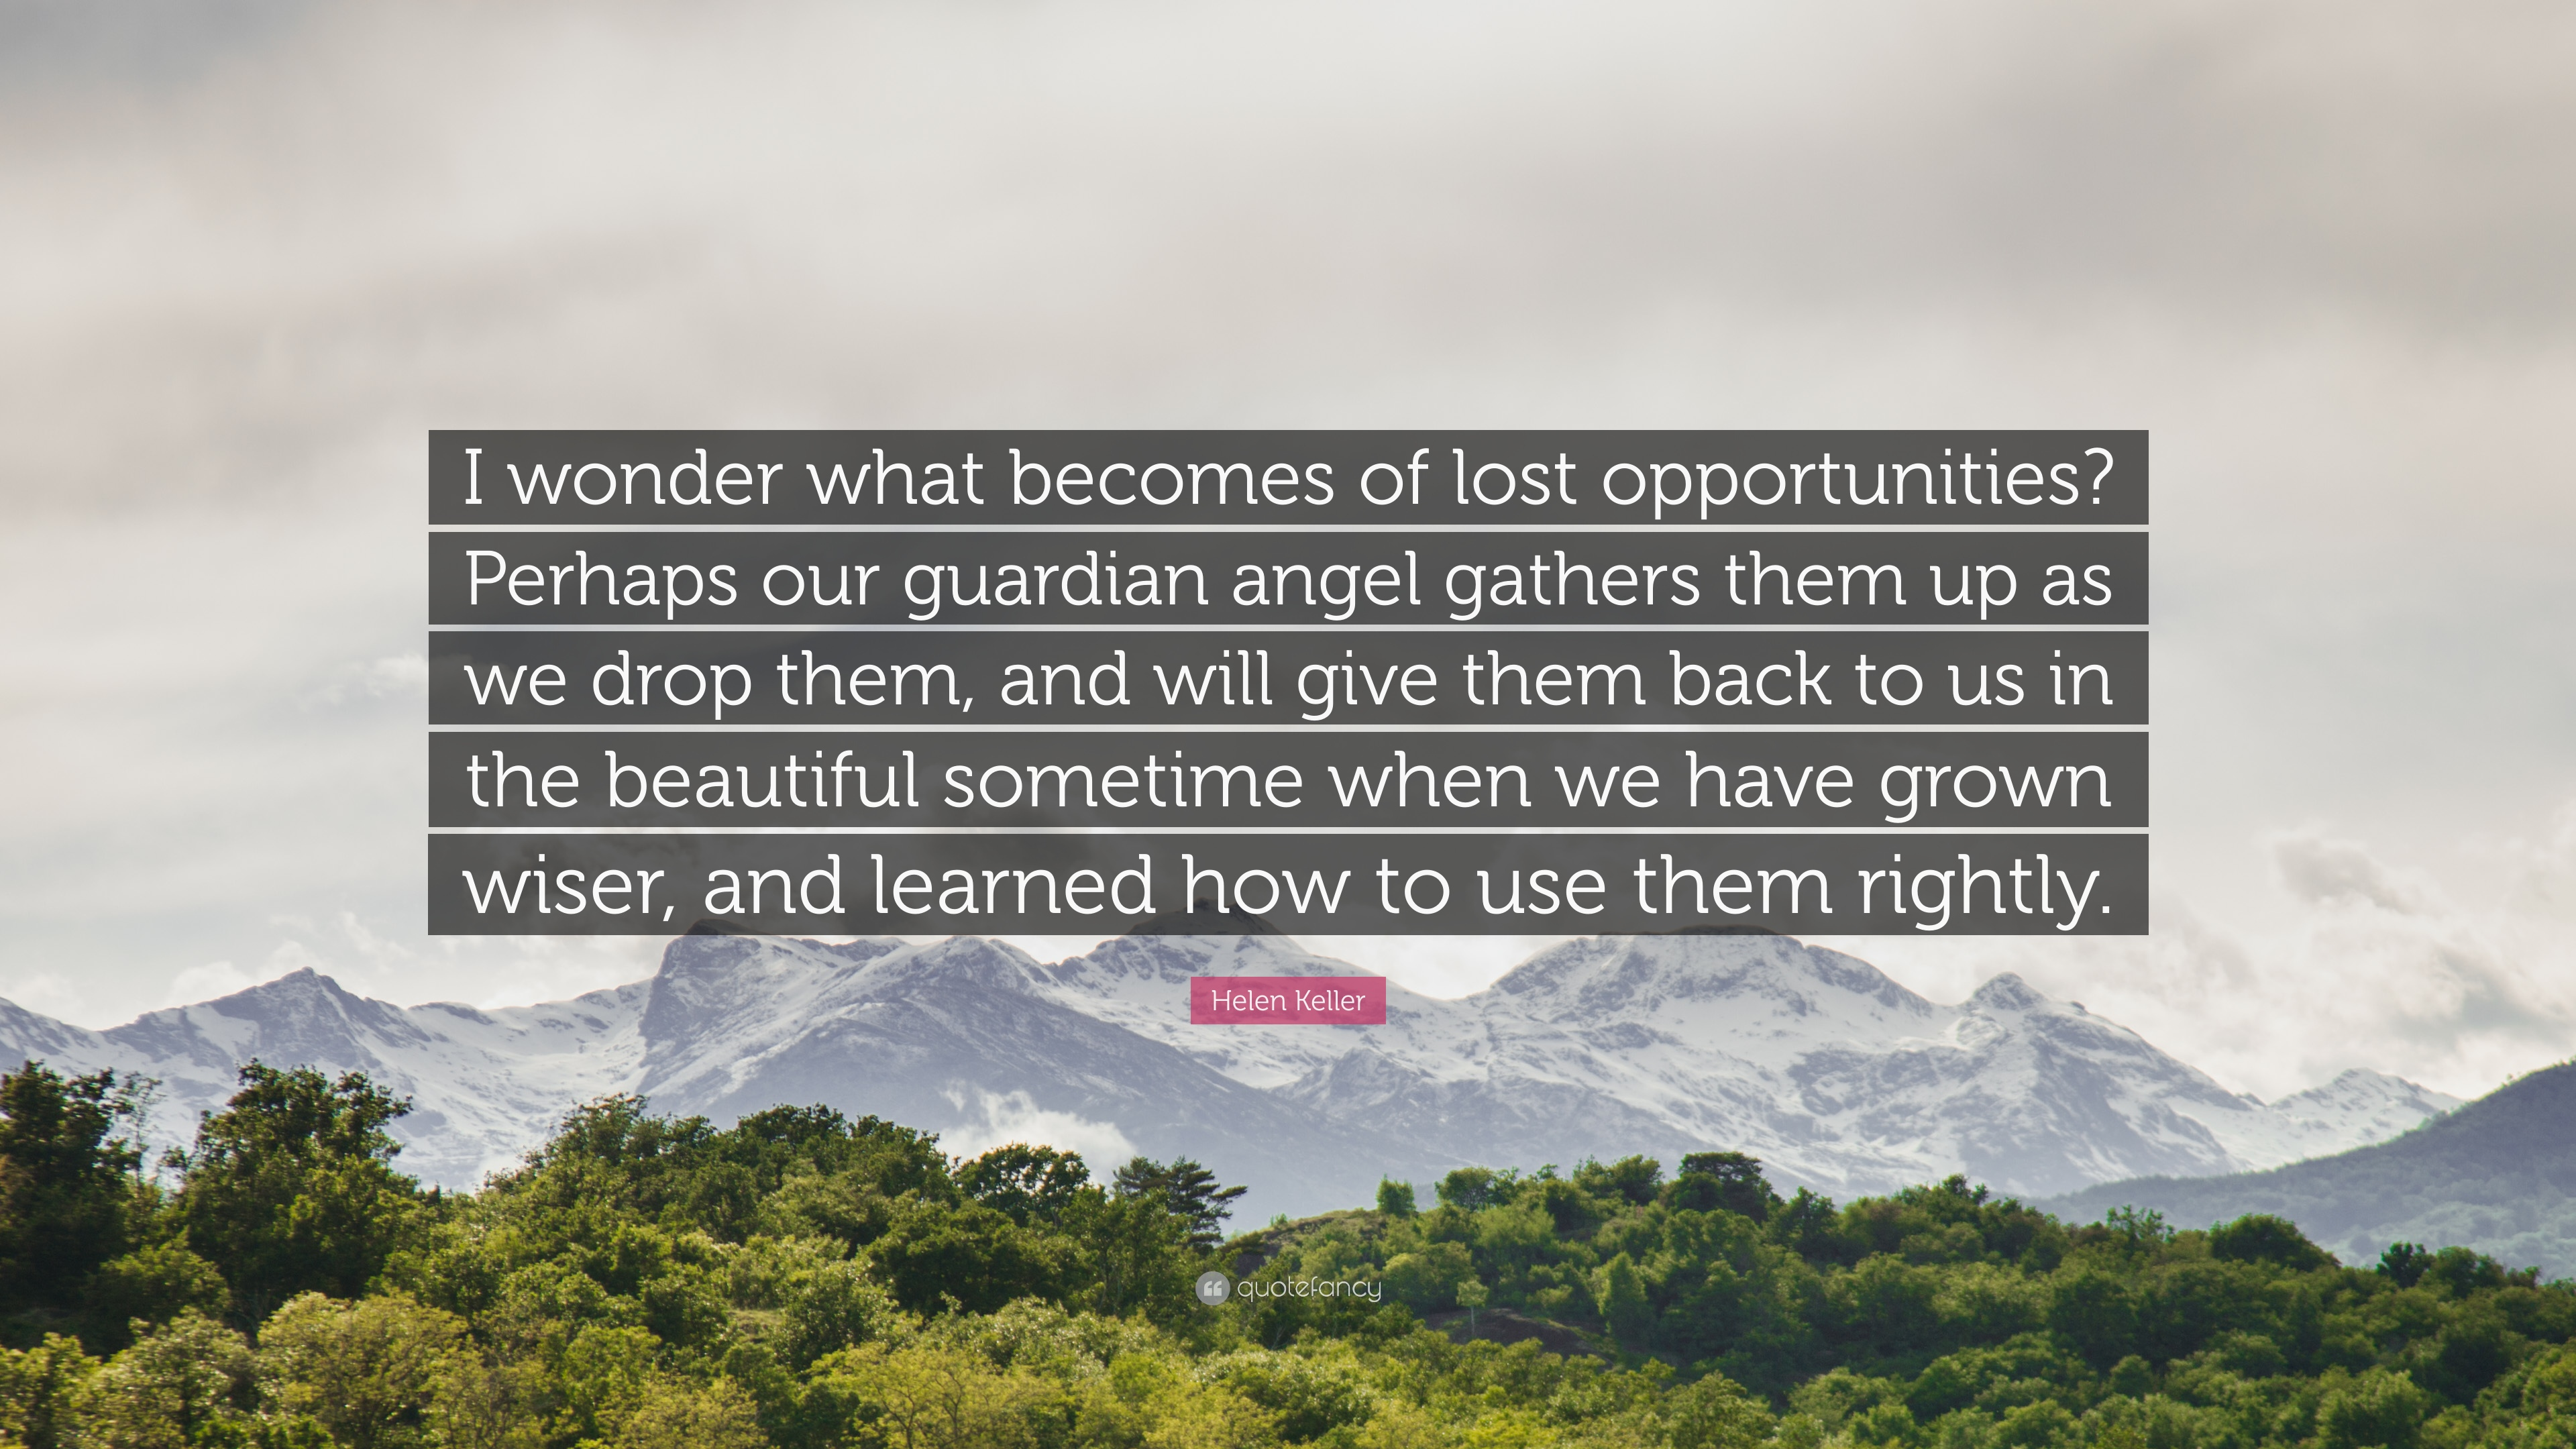 Helen keller quote i wonder what becomes of lost opportunities perhaps our guardian